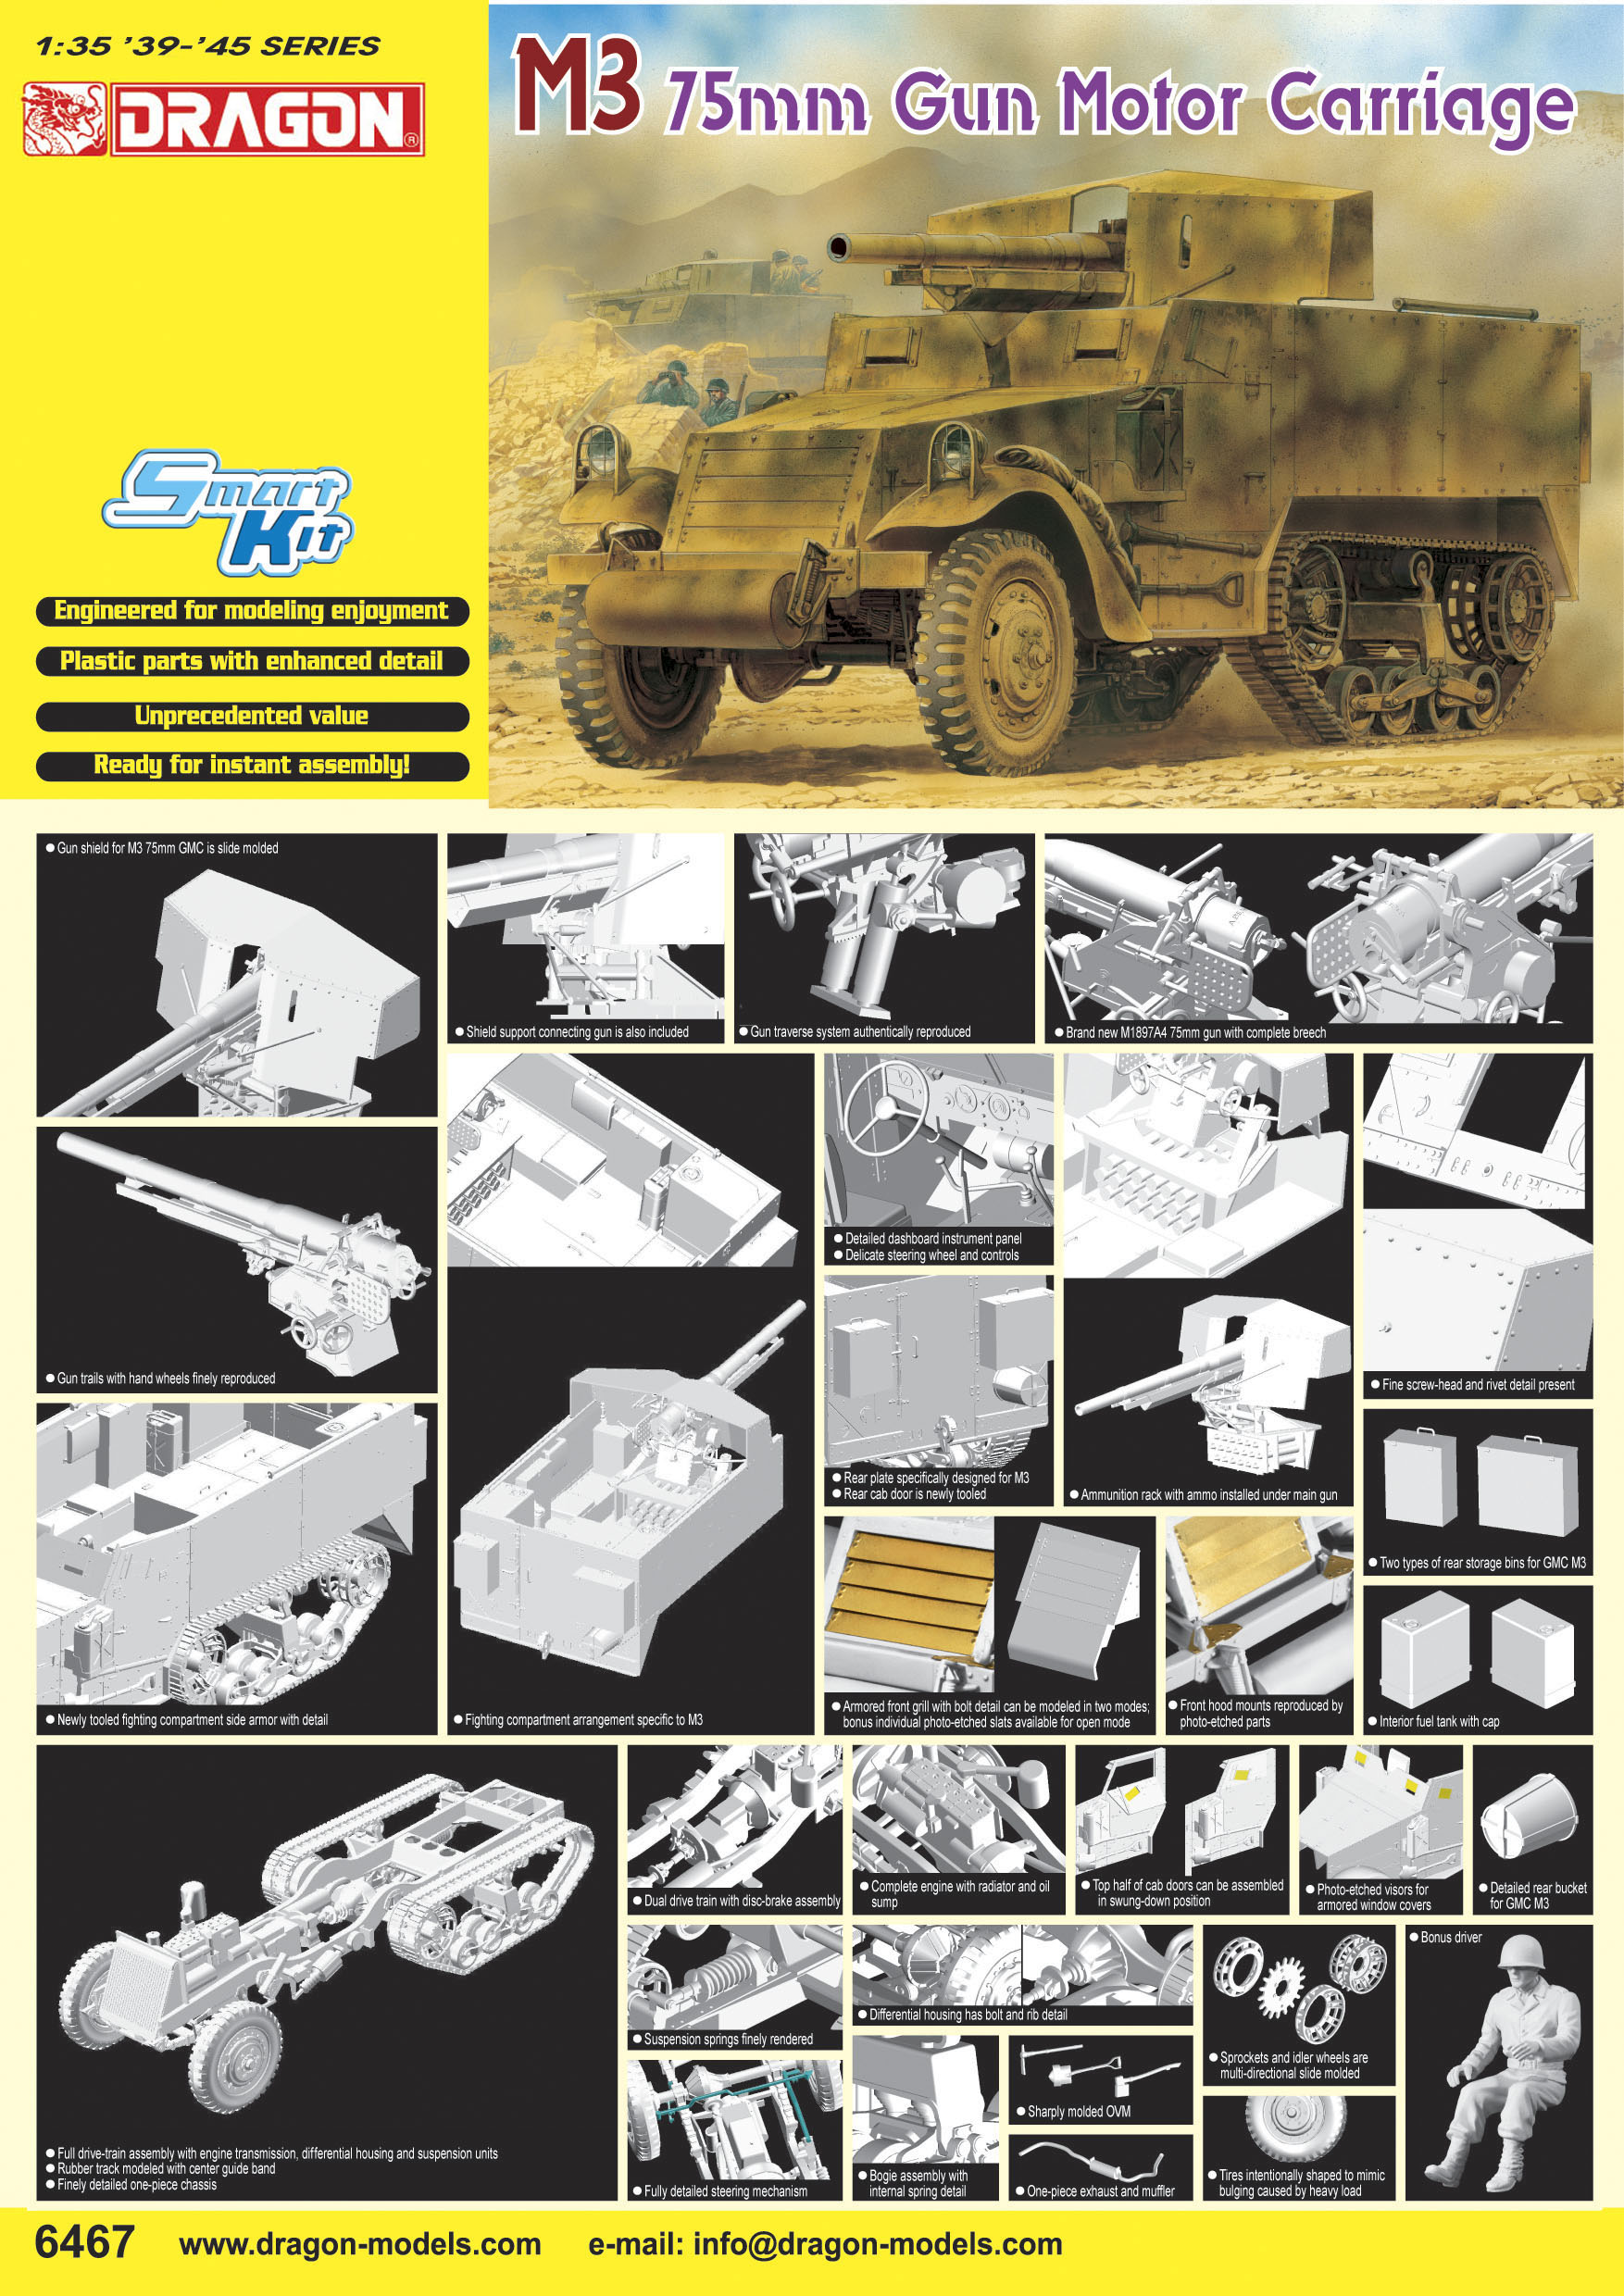 M3 75mm Gun Motor Carriage - 1:35